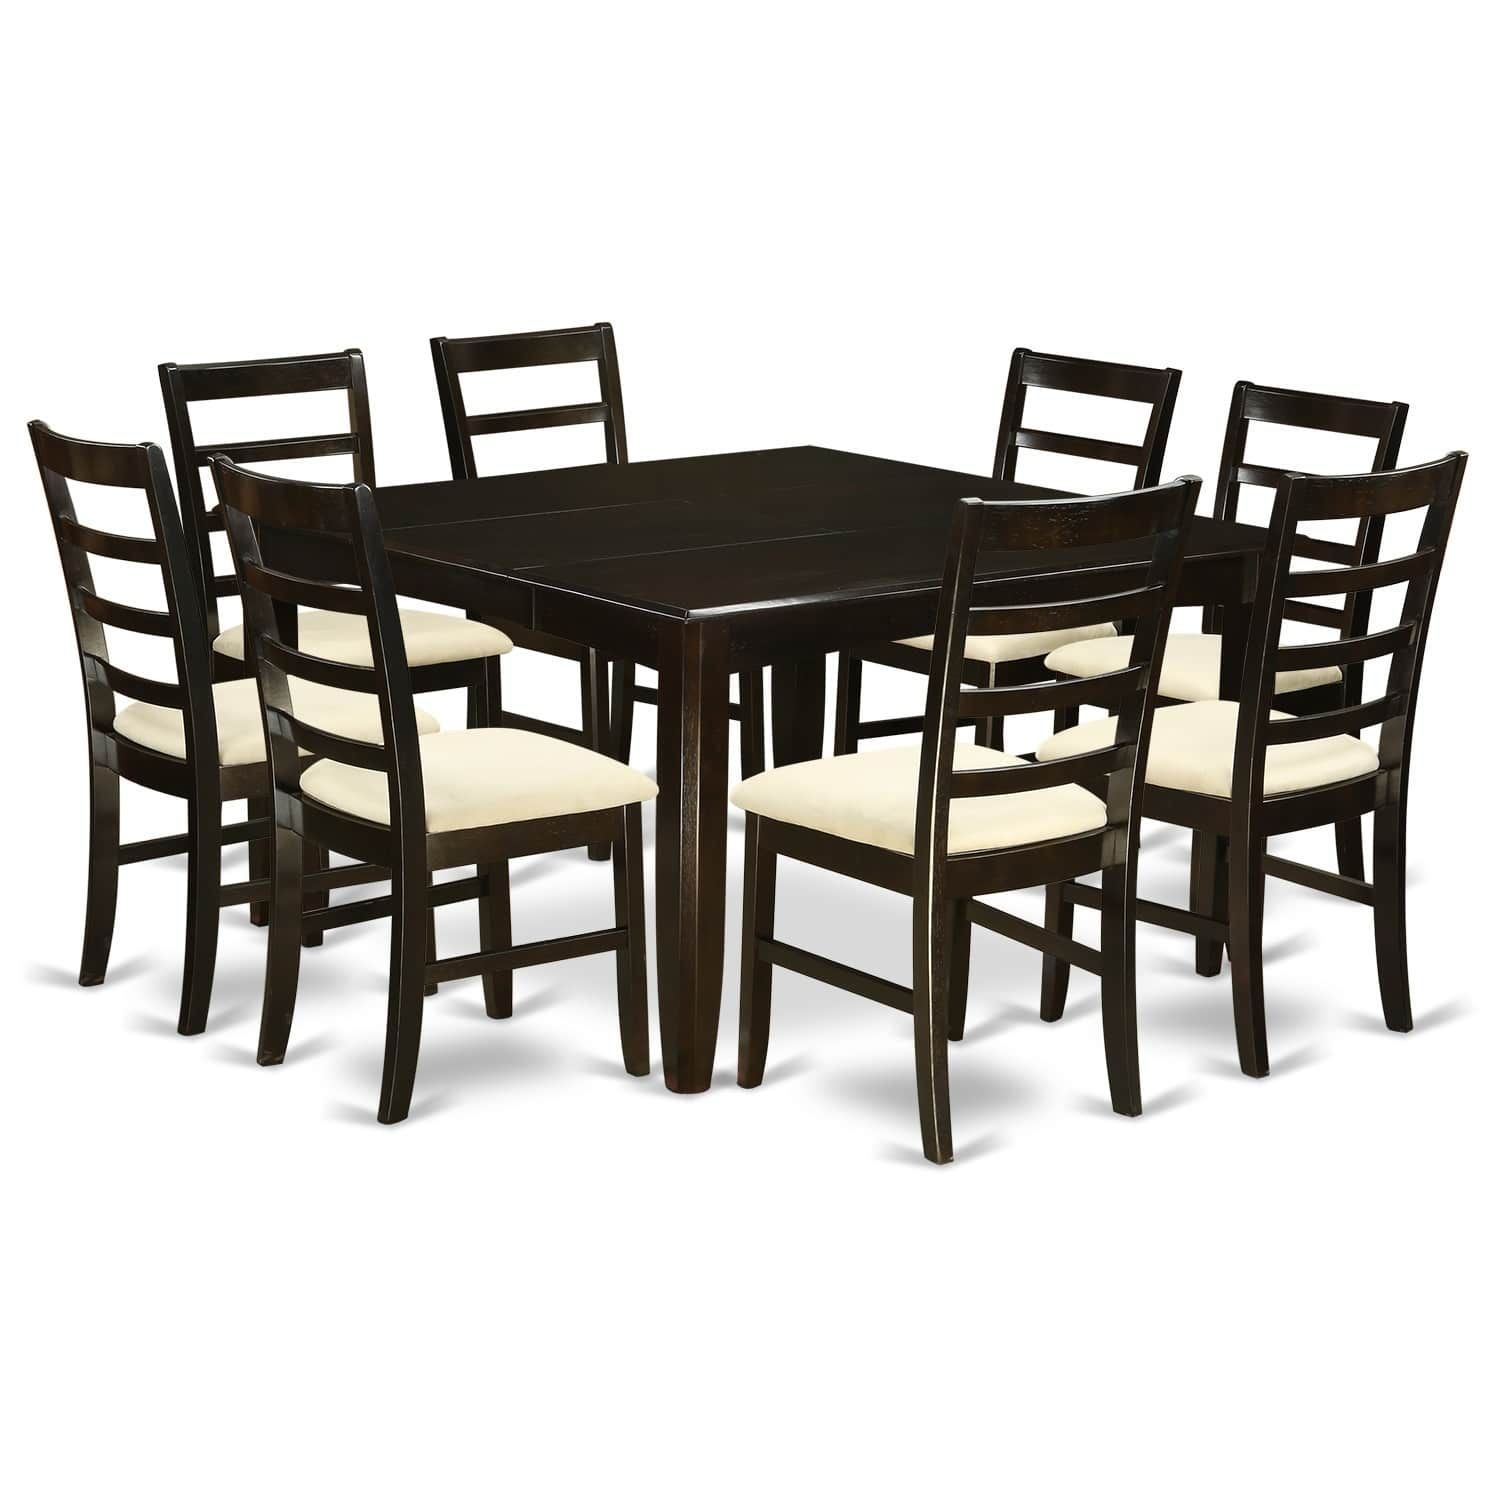 Parf9Cap 9 Pc Dining Room Setsquare 54 Table And 8 Stools Inspiration 8 Piece Dining Room Set Design Ideas